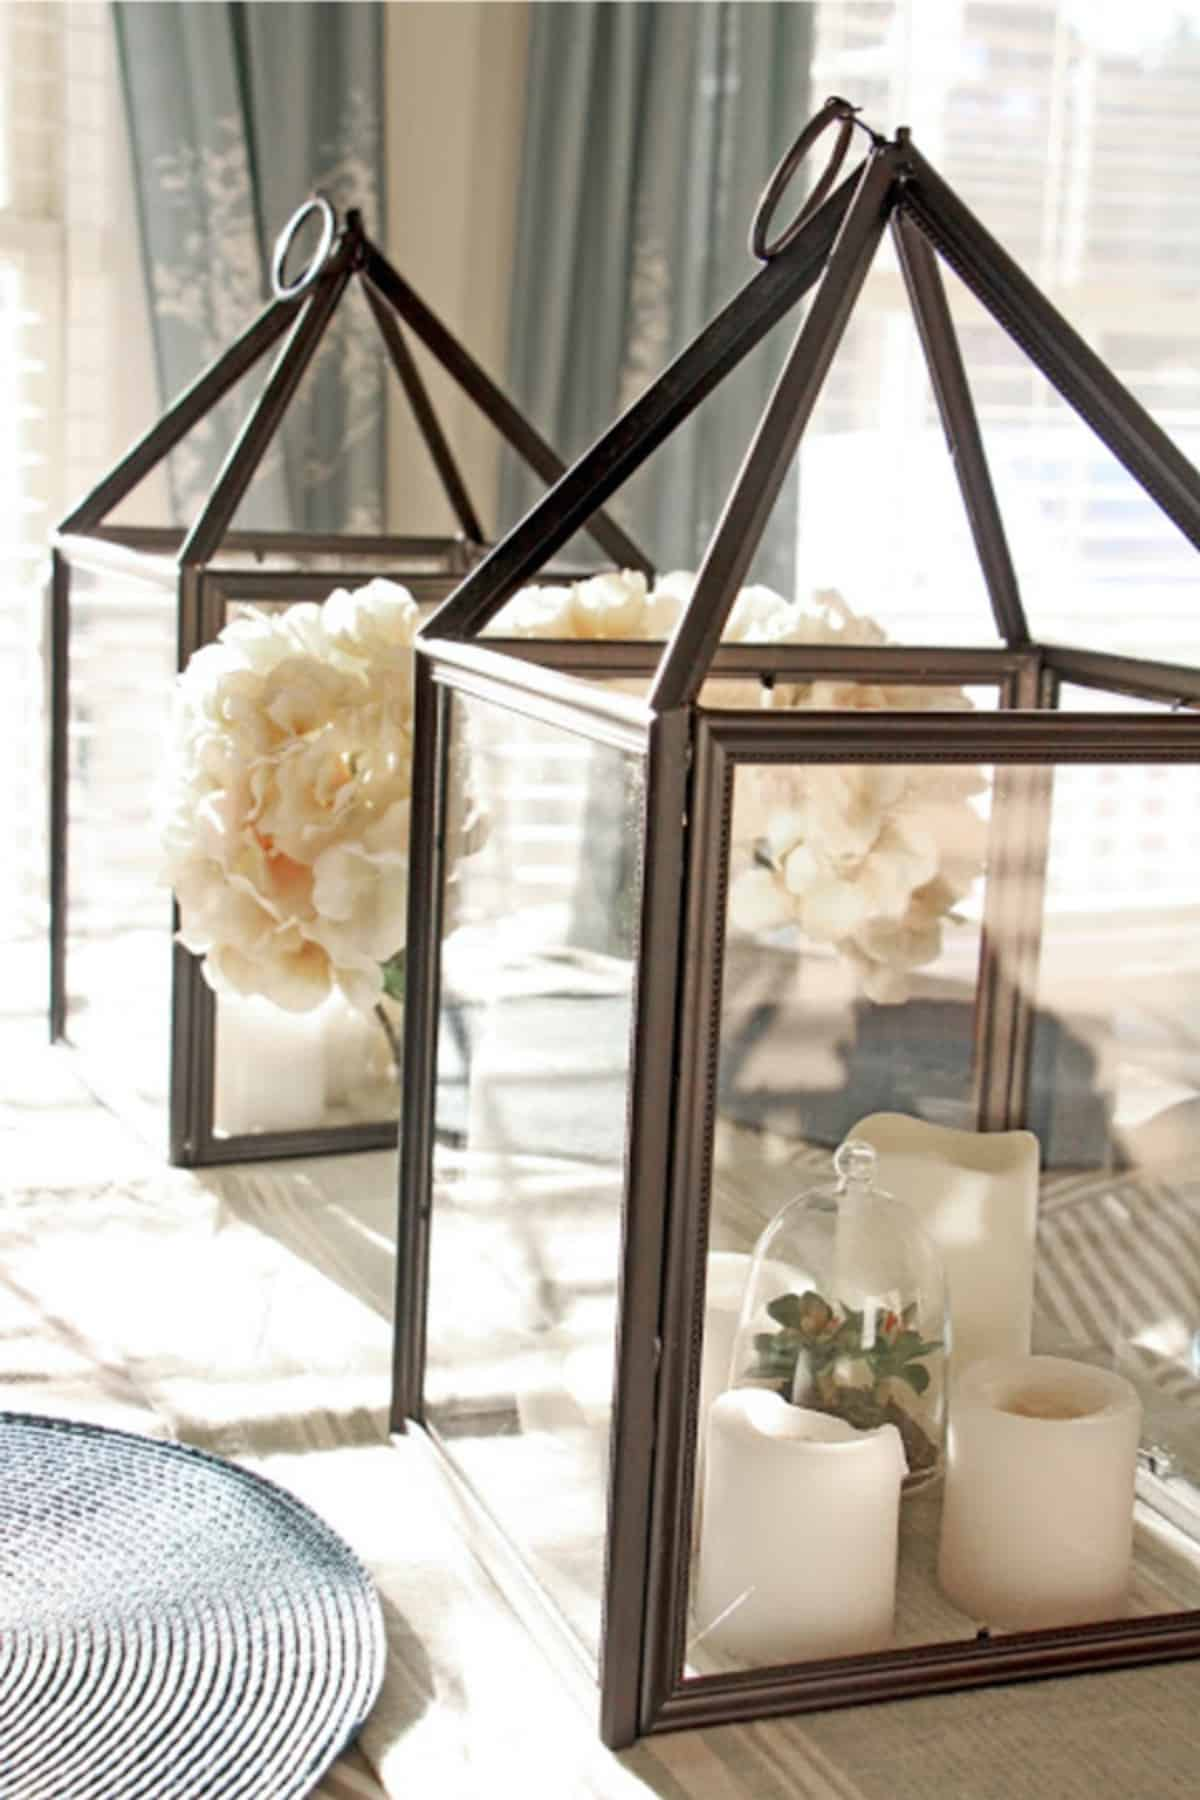 The Classy Lantern Candle Holder